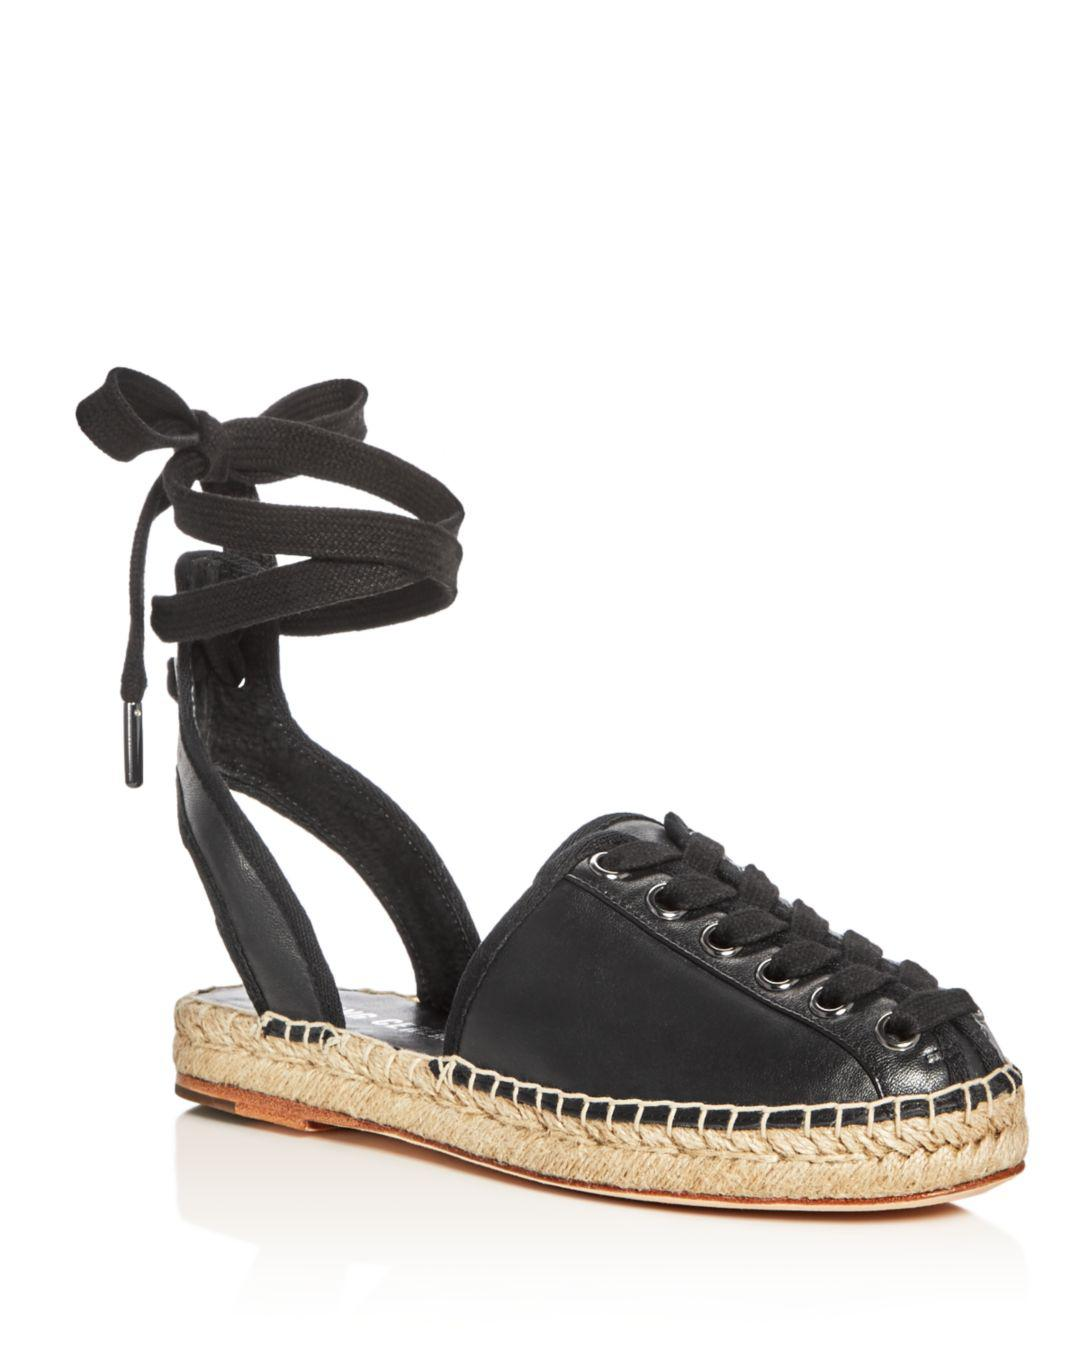 88645bf1613 Opening Ceremony. Women s Black Kahsea Ankle Tie Platform Espadrille Flats